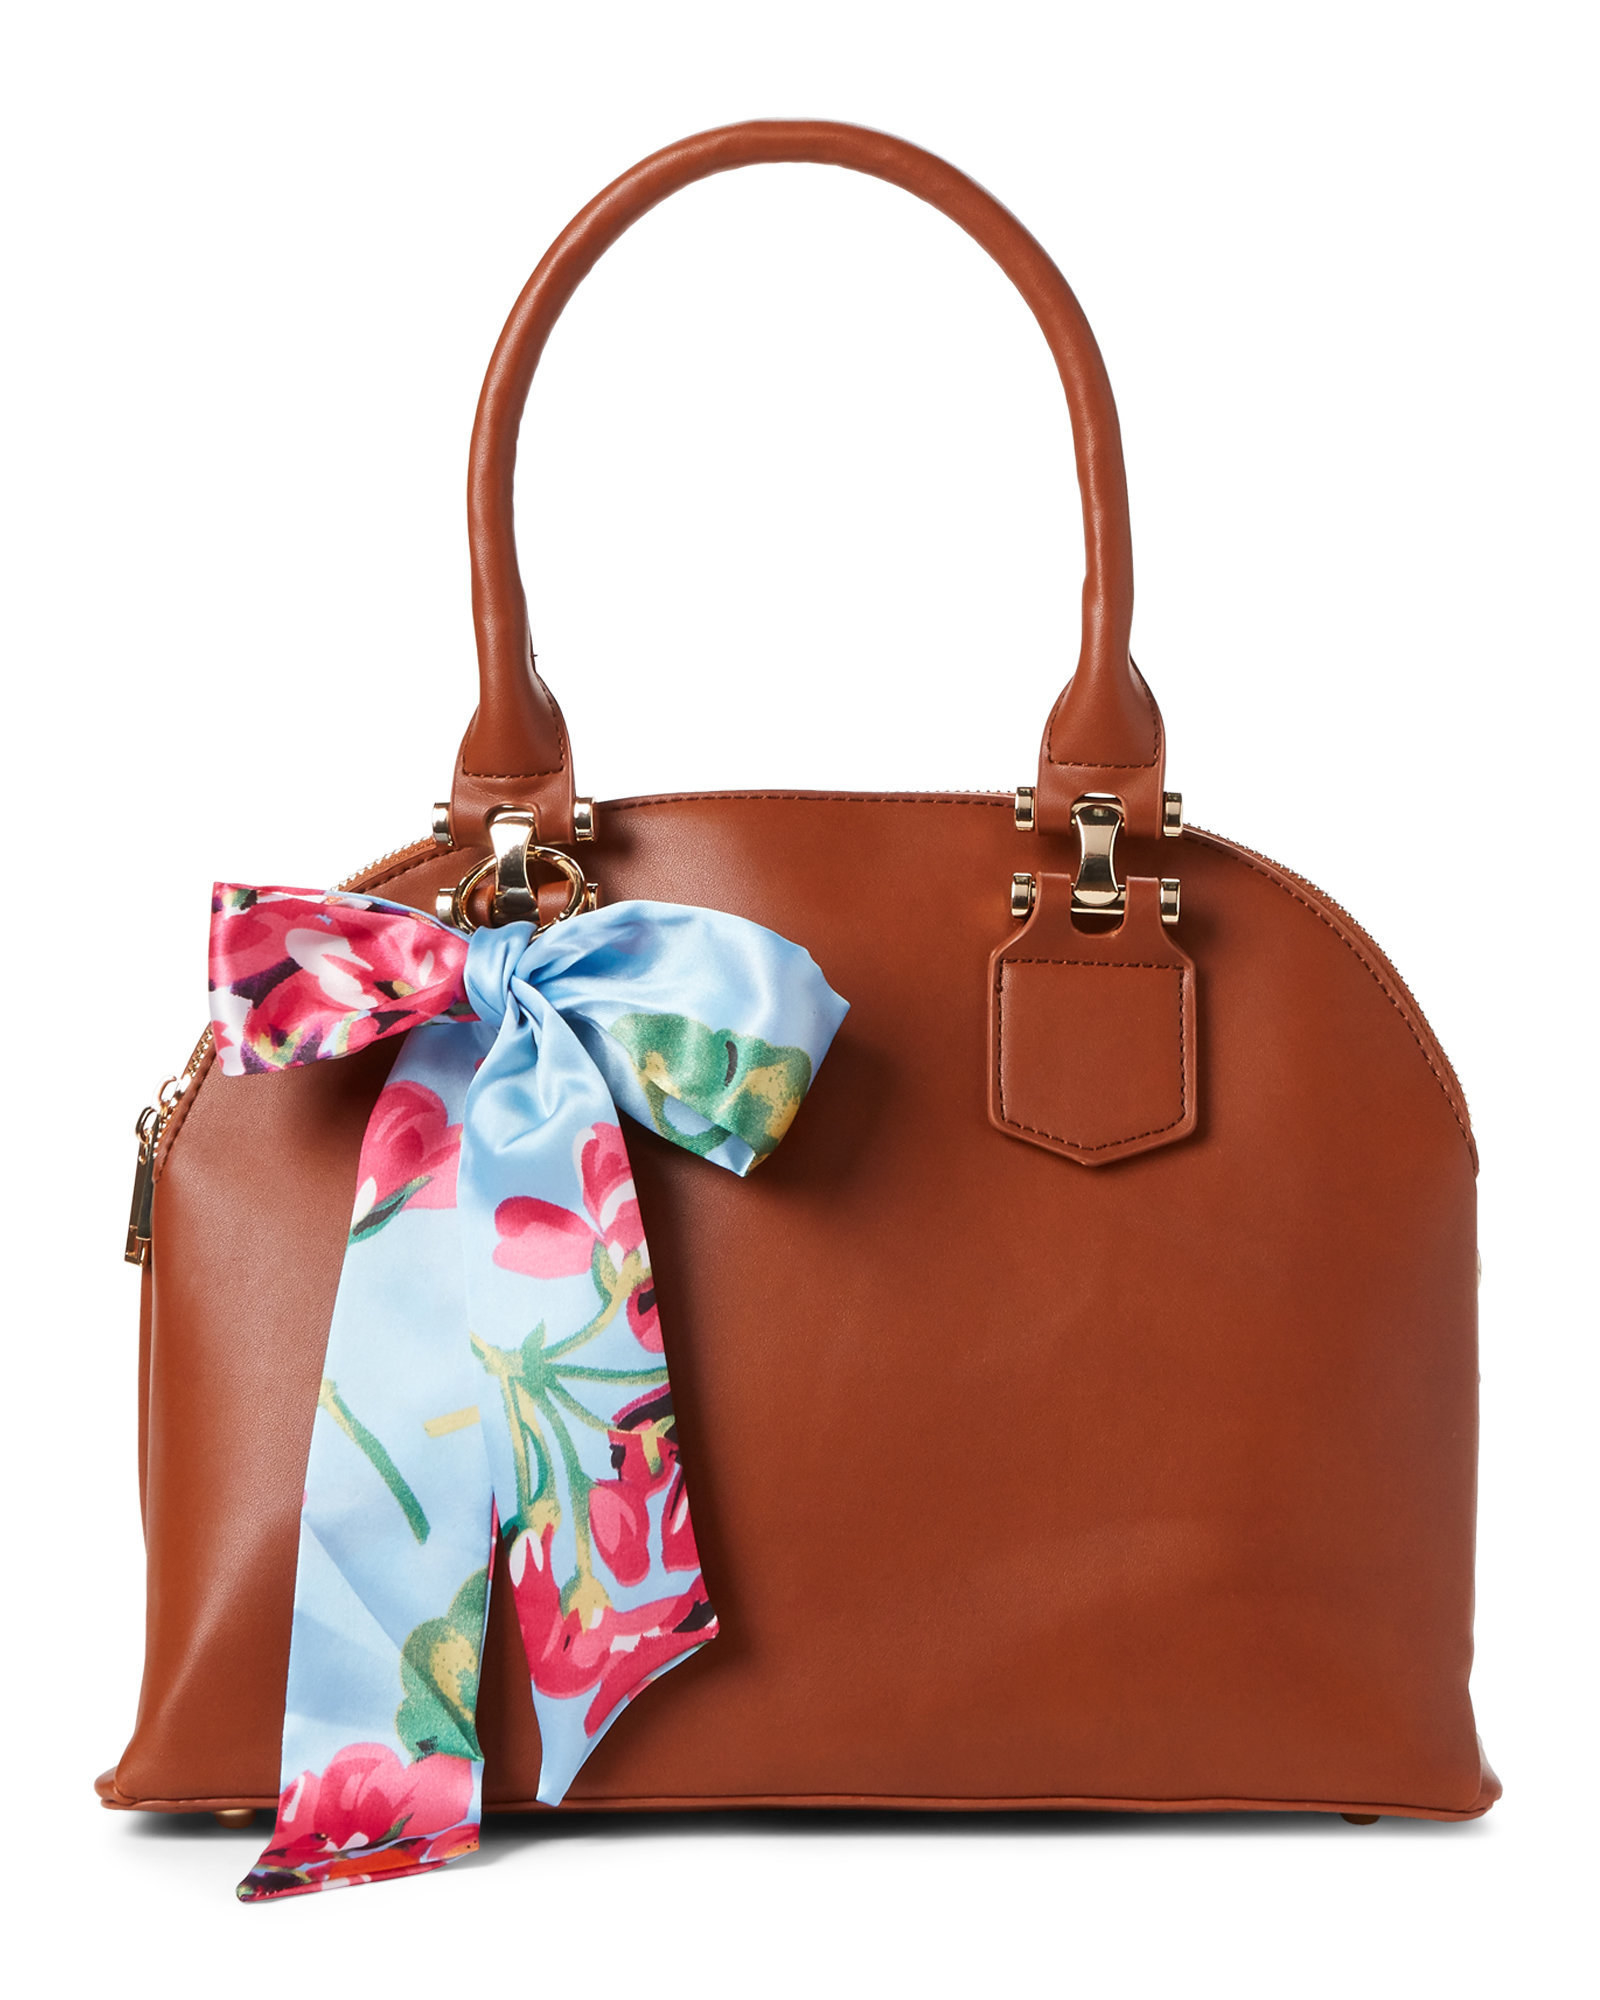 c0e19838a22e 21 Of The Best Places To Buy Handbags And Purses Online In 2018